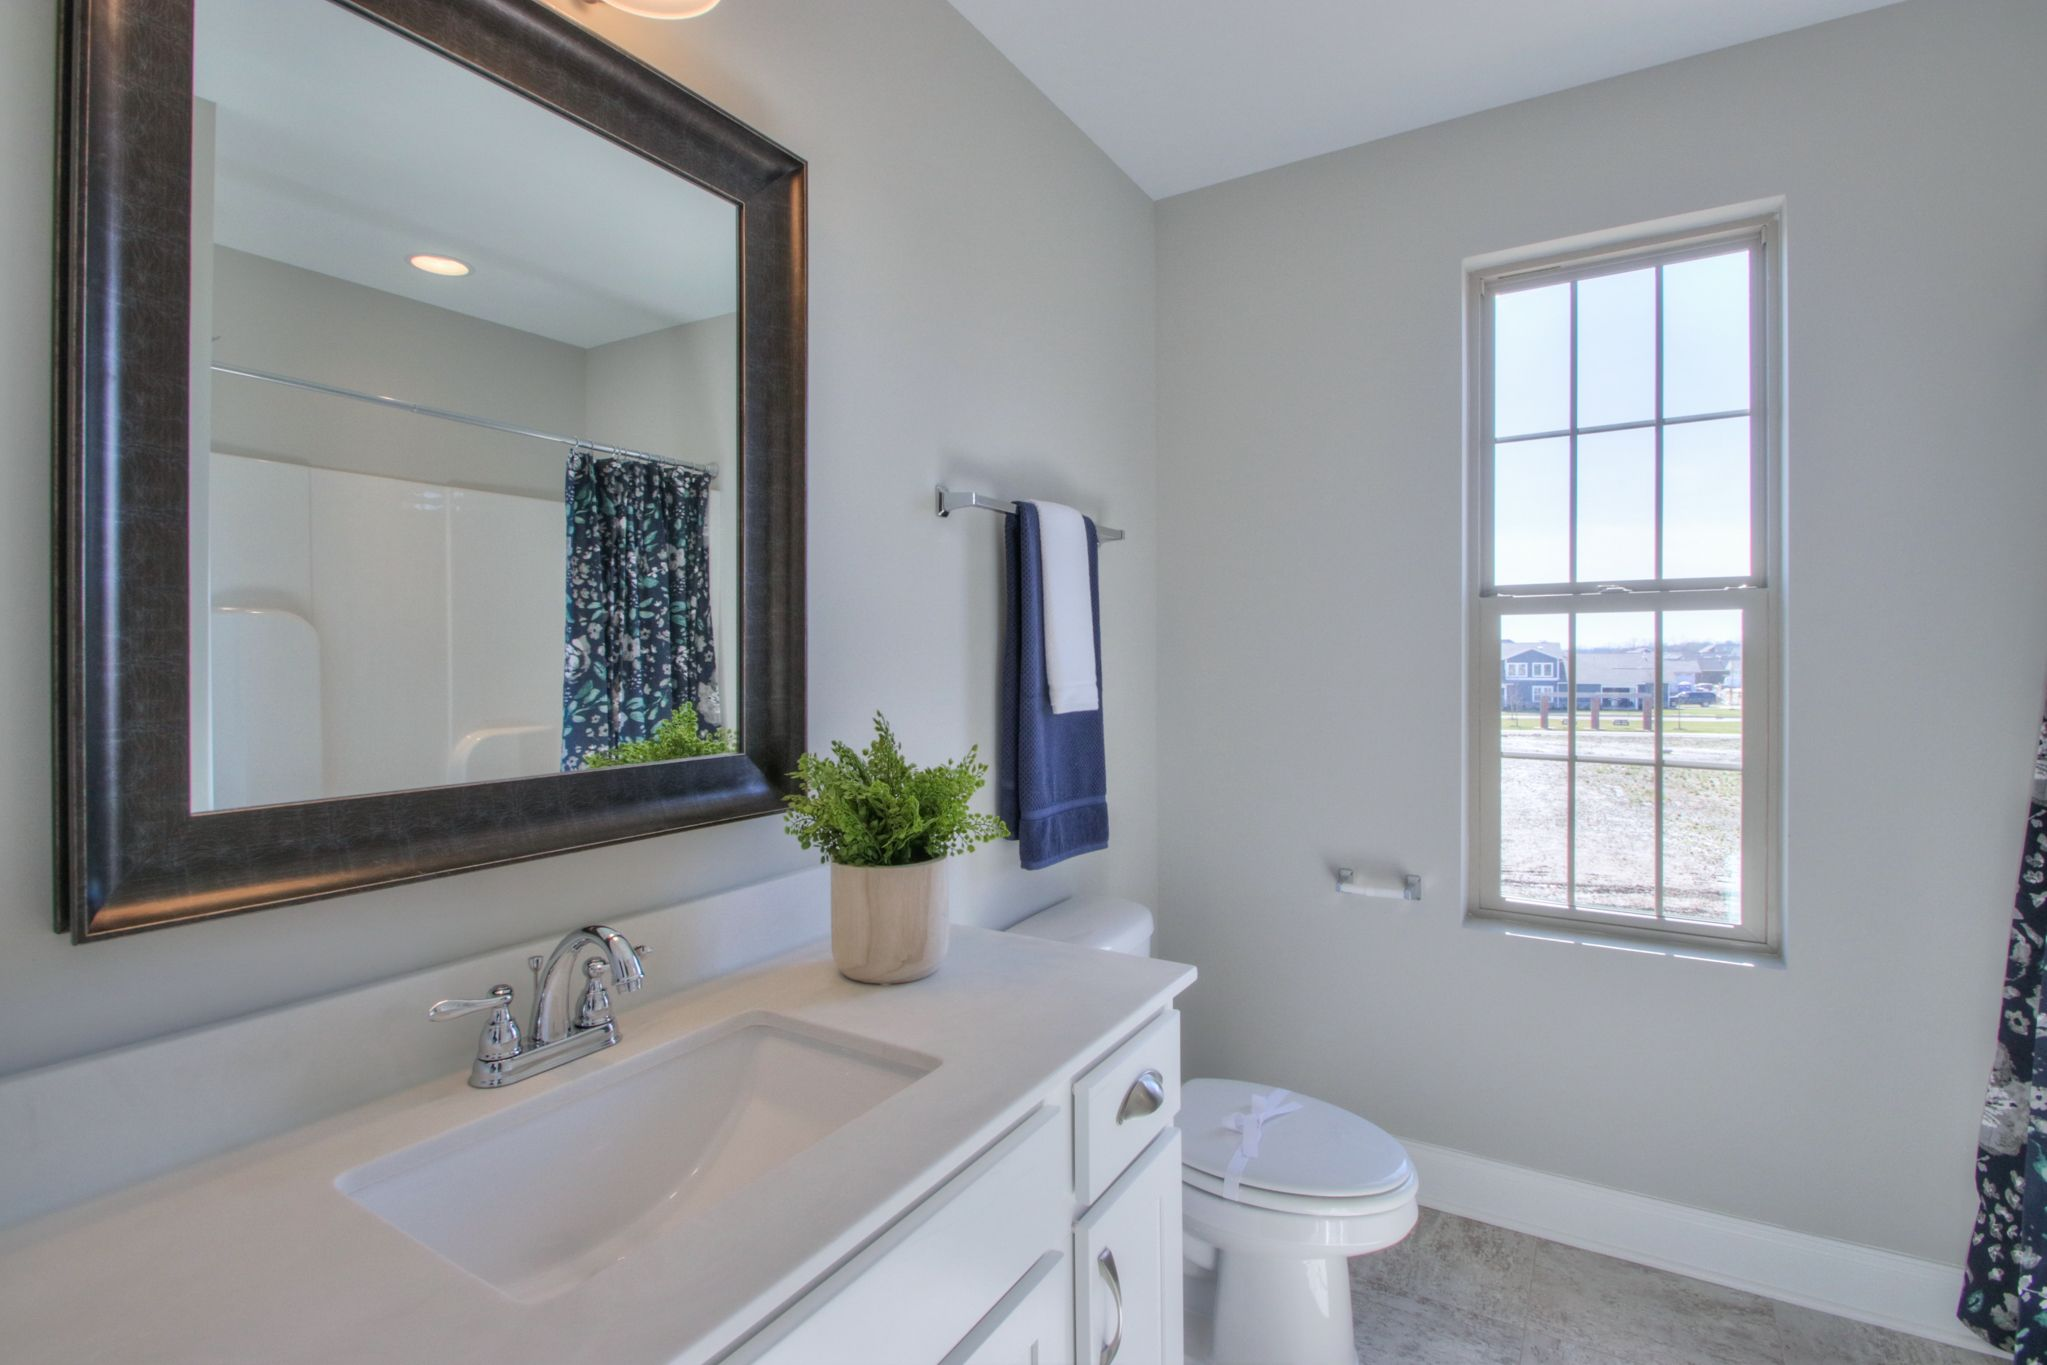 Bathroom featured in The Newport By Goodall Homes in Nashville, TN